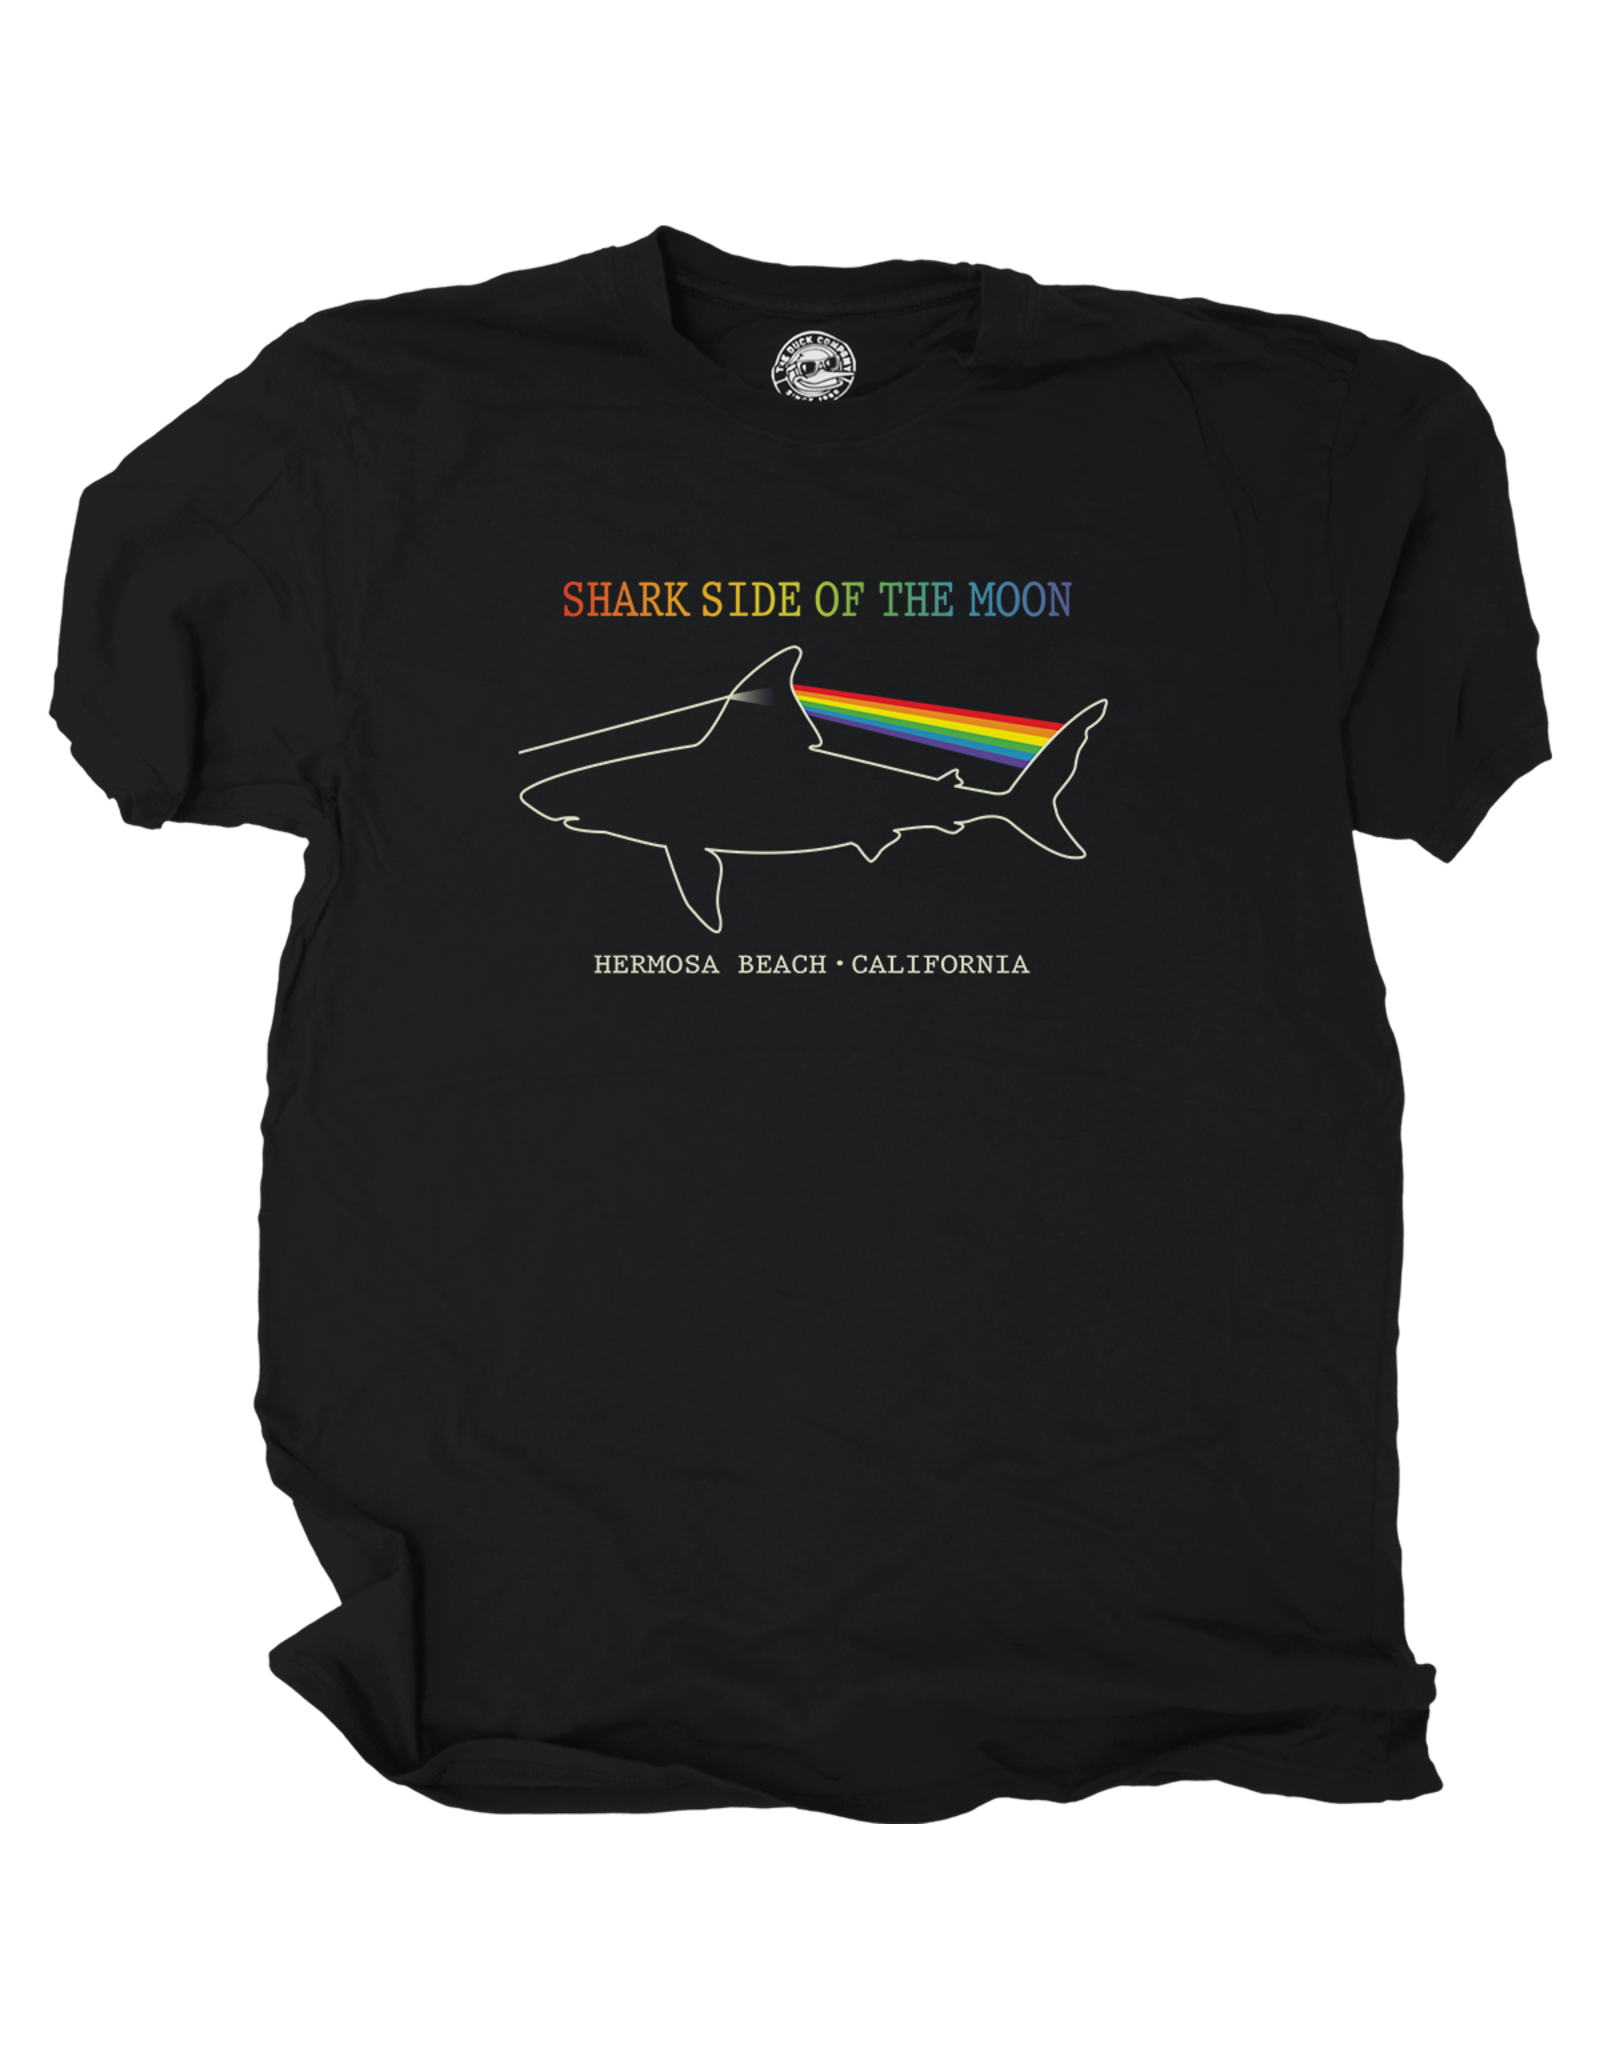 Duck Co. #407 DC SS HB SHARK SIDE OF THE MOON W.BLACK